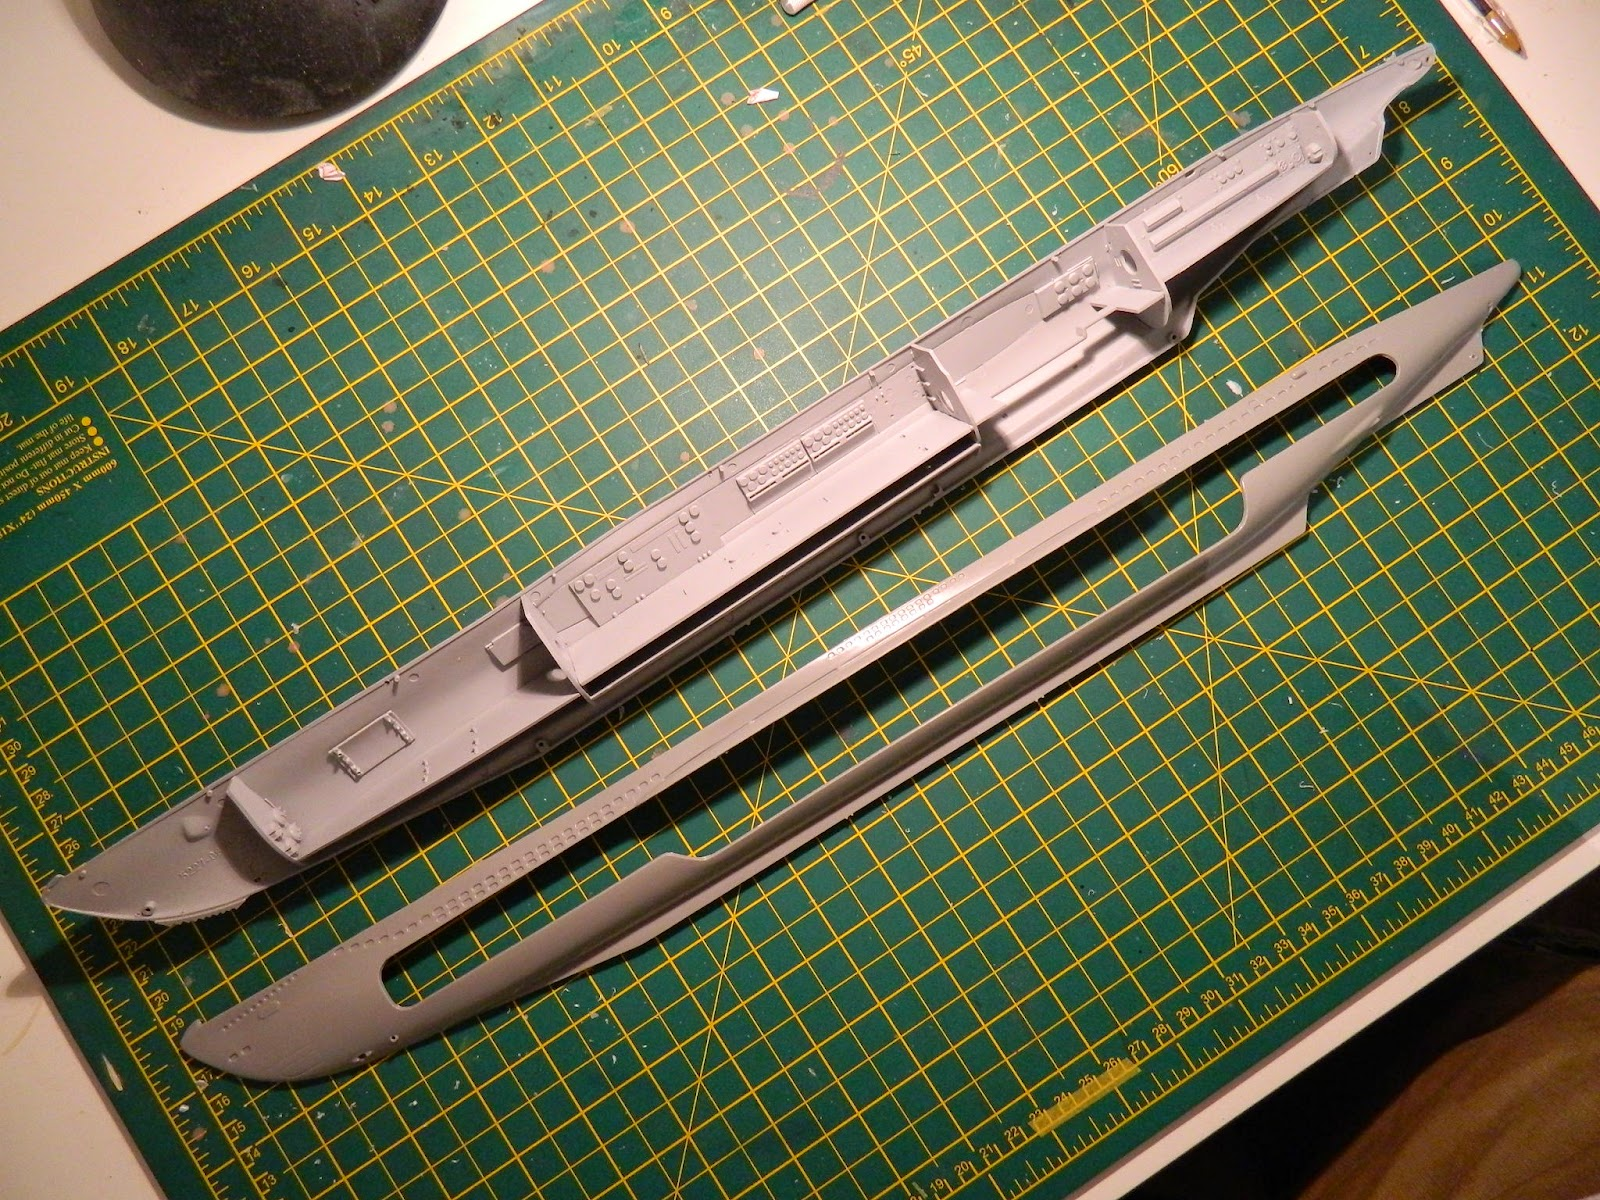 medium resolution of the model is a re release for very affordable price 15 pounds bought at hinckley model show this year as for old er model it has over 120 parts